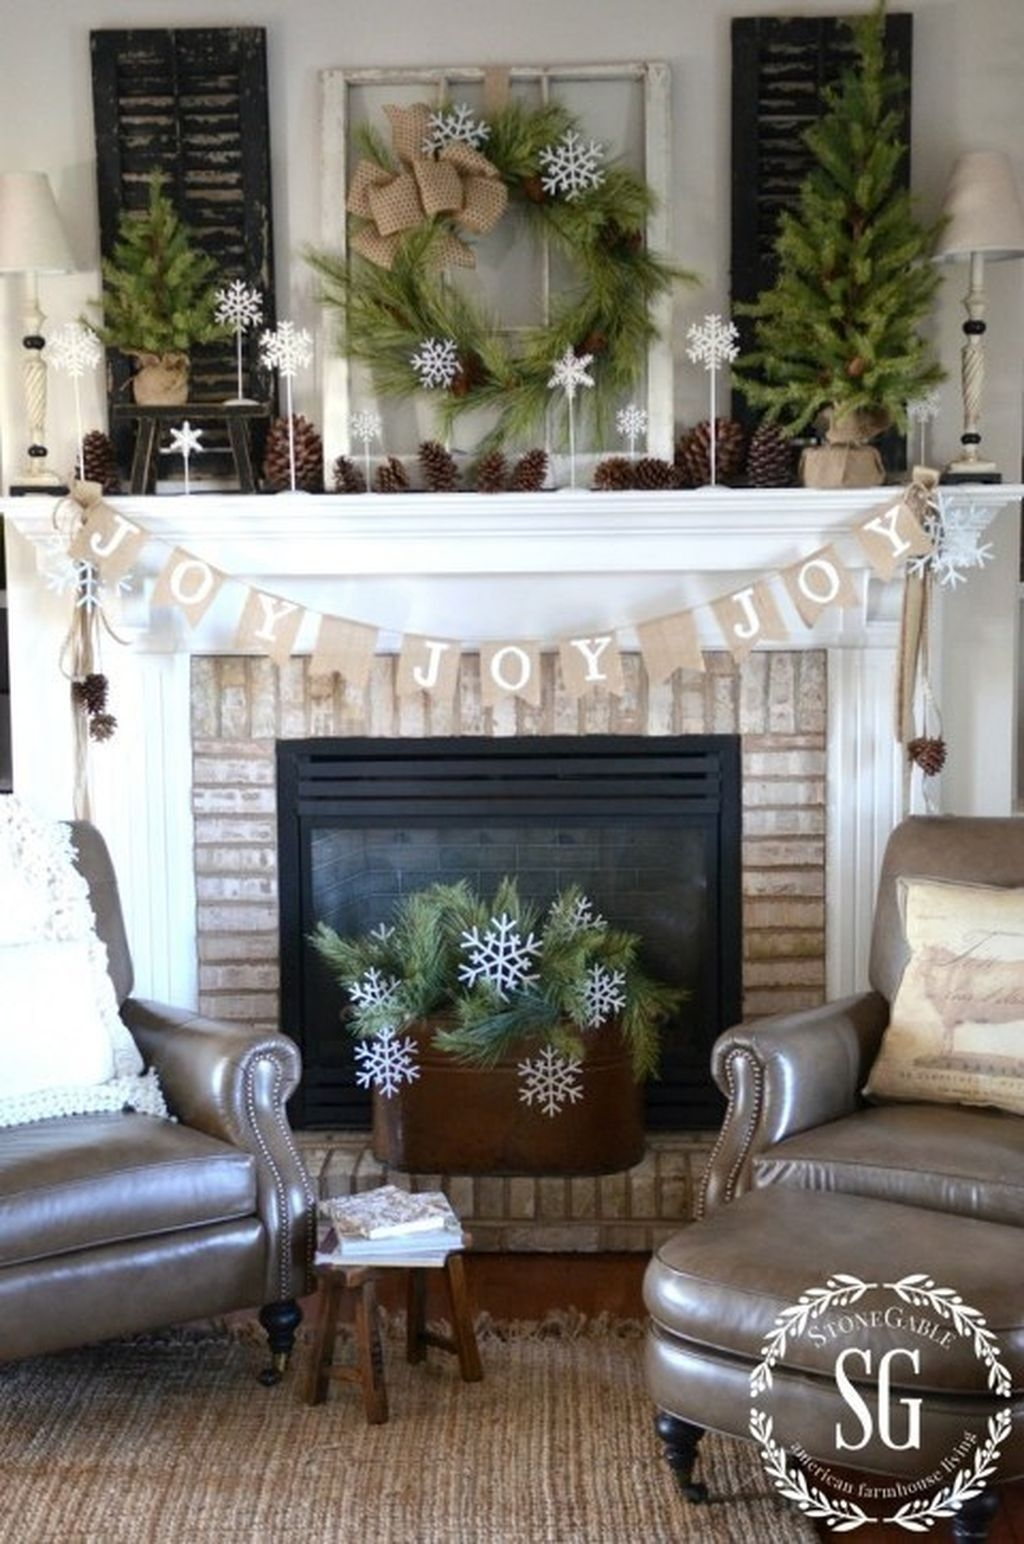 Cozy Fireplace Christmas Decoration Ideas To Makes Your Room Keep Warm14